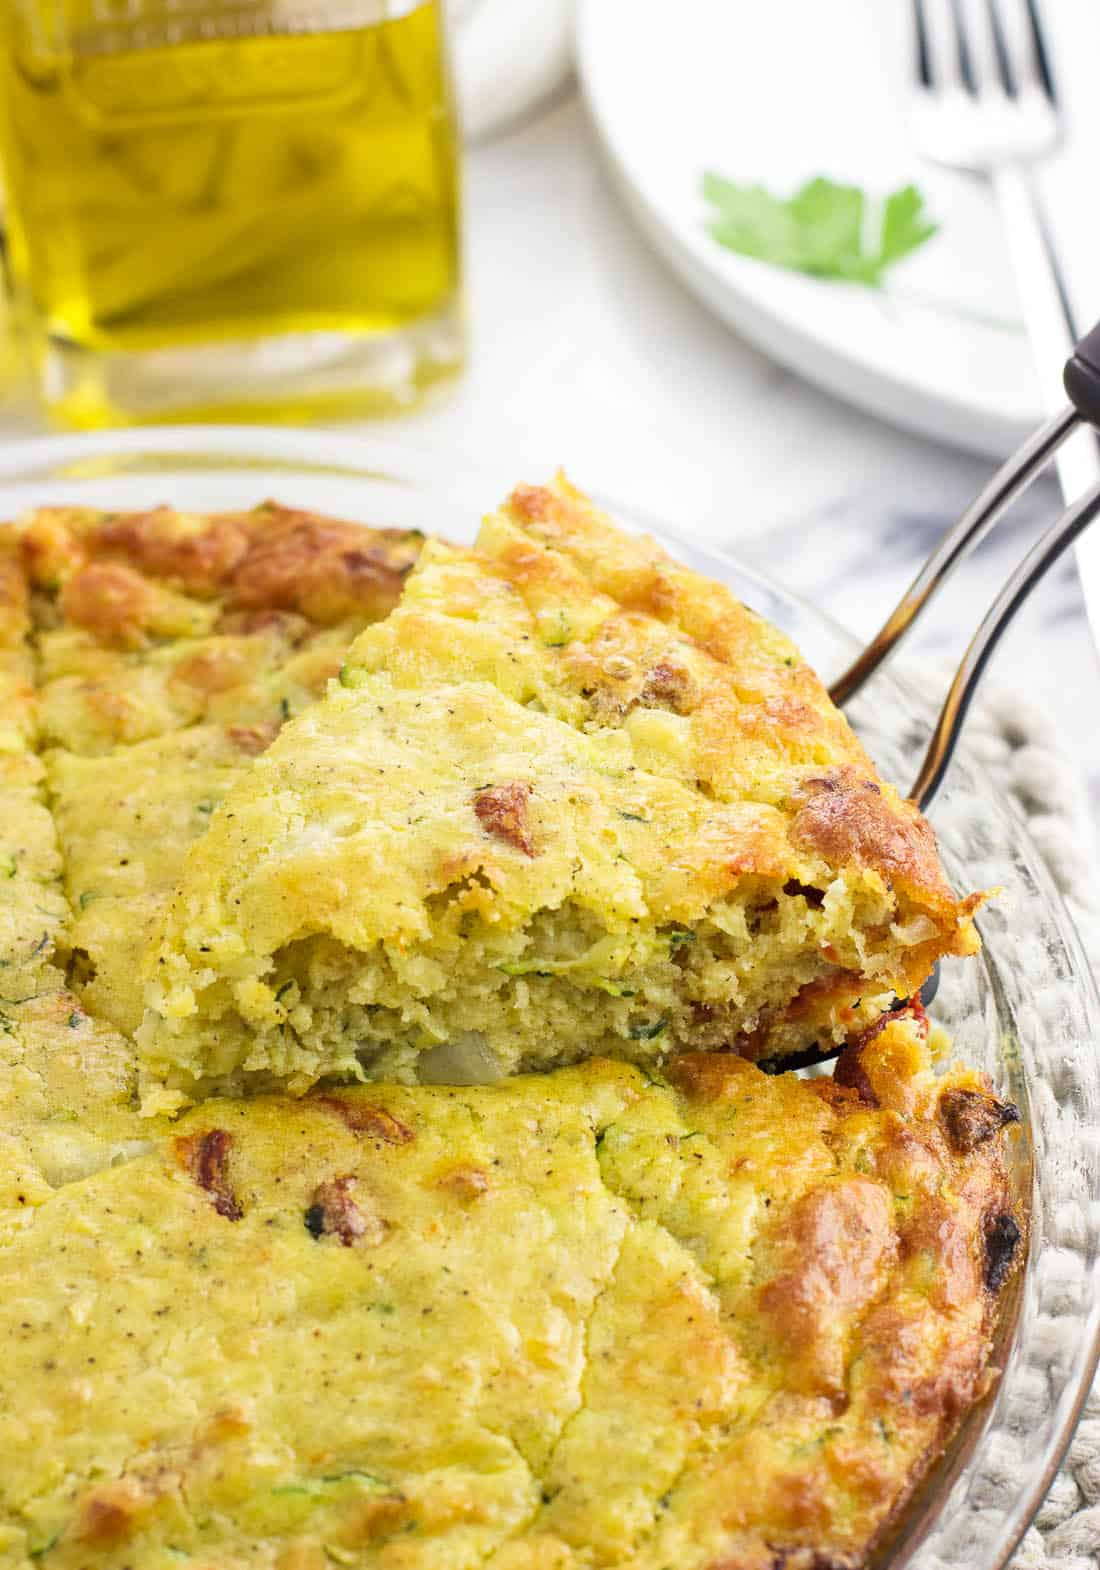 Crustless zucchini quiche is a quicker and easier quiche recipe for a satisfying breakfast or anytime meal. This one-bowl quiche uses Bisquick for structure and features tons of flavor from smoked mozzarella and sun-dried tomatoes.